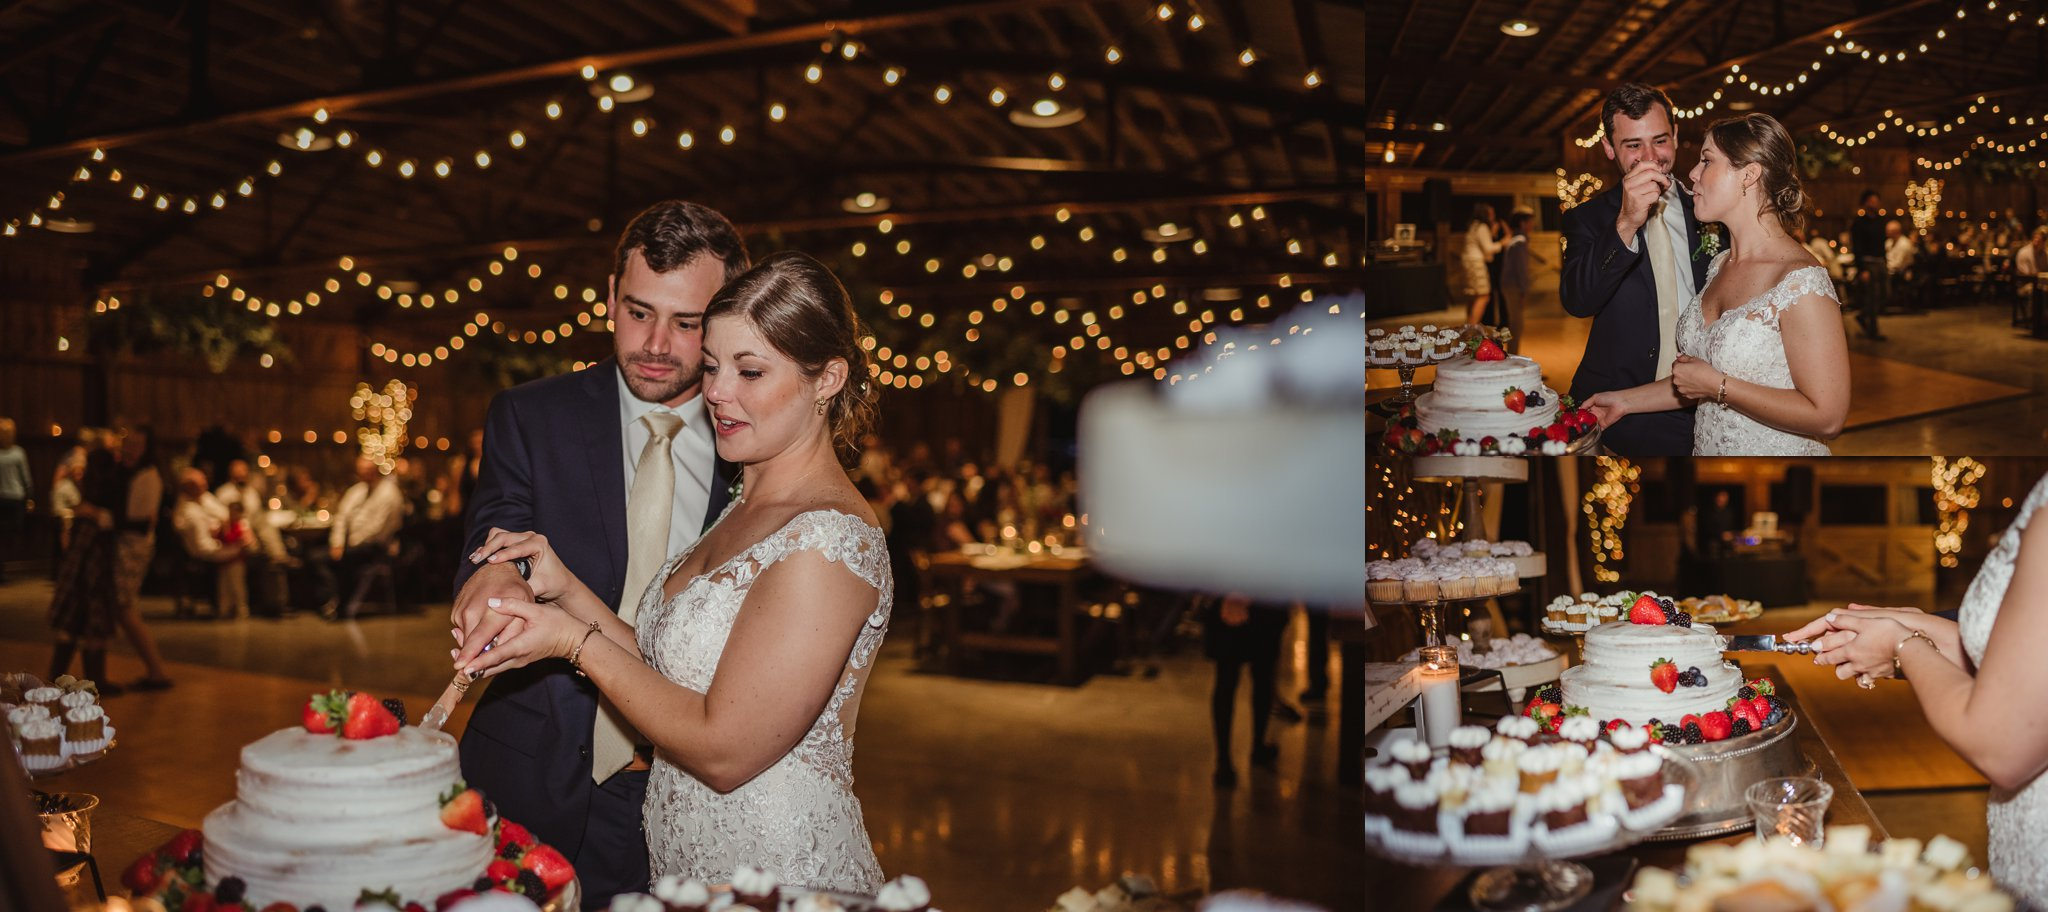 The bride and groom cut and enjoyed their cake during their wedding reception at the Little Herb House in Raleigh, North Carolina. Photos by Rose Trail Images.